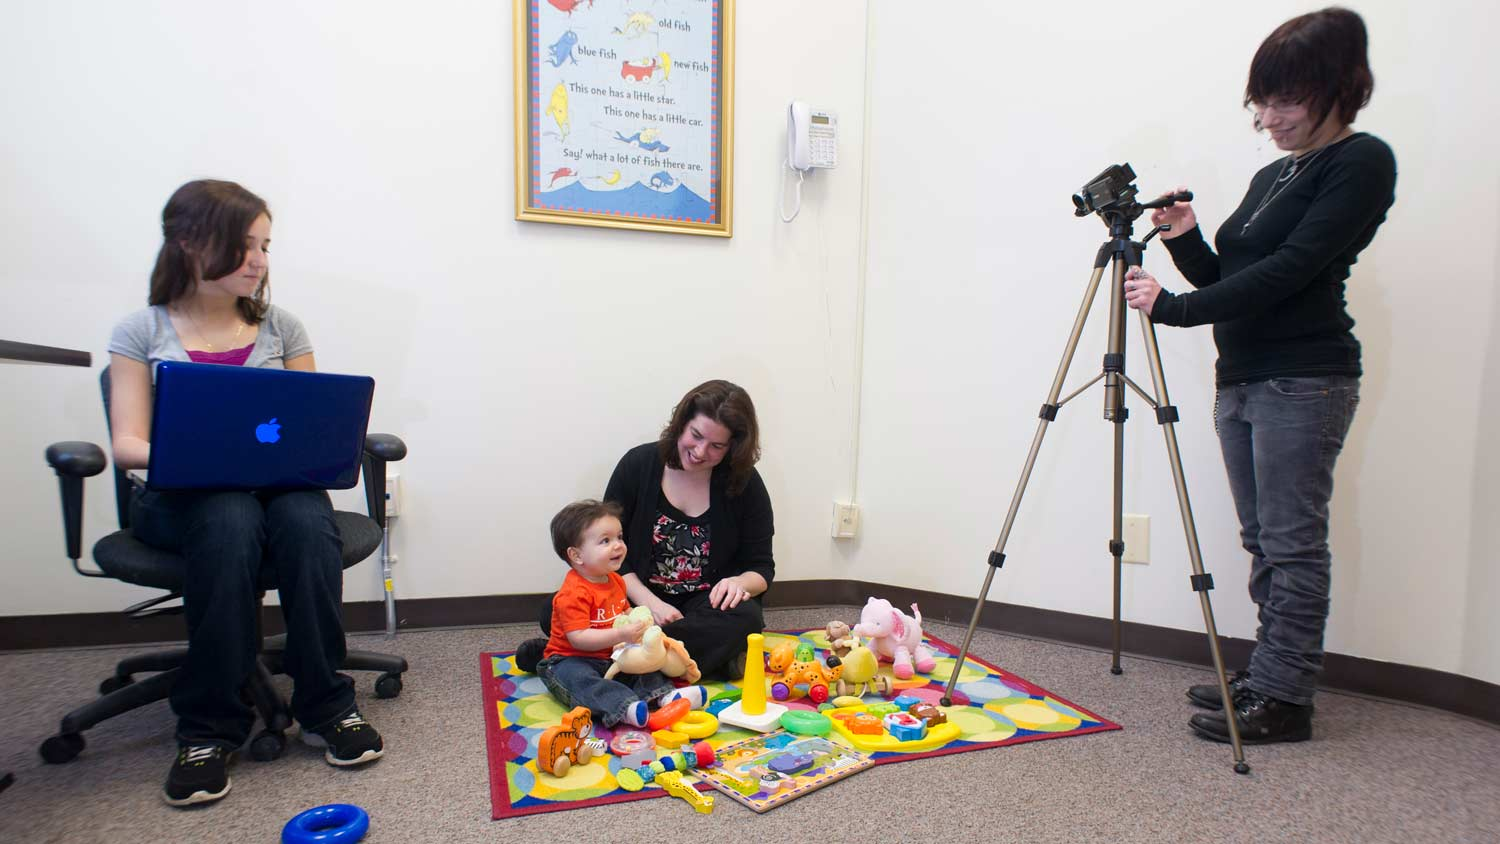 Two people recording a baby playing on a play mat with another adult